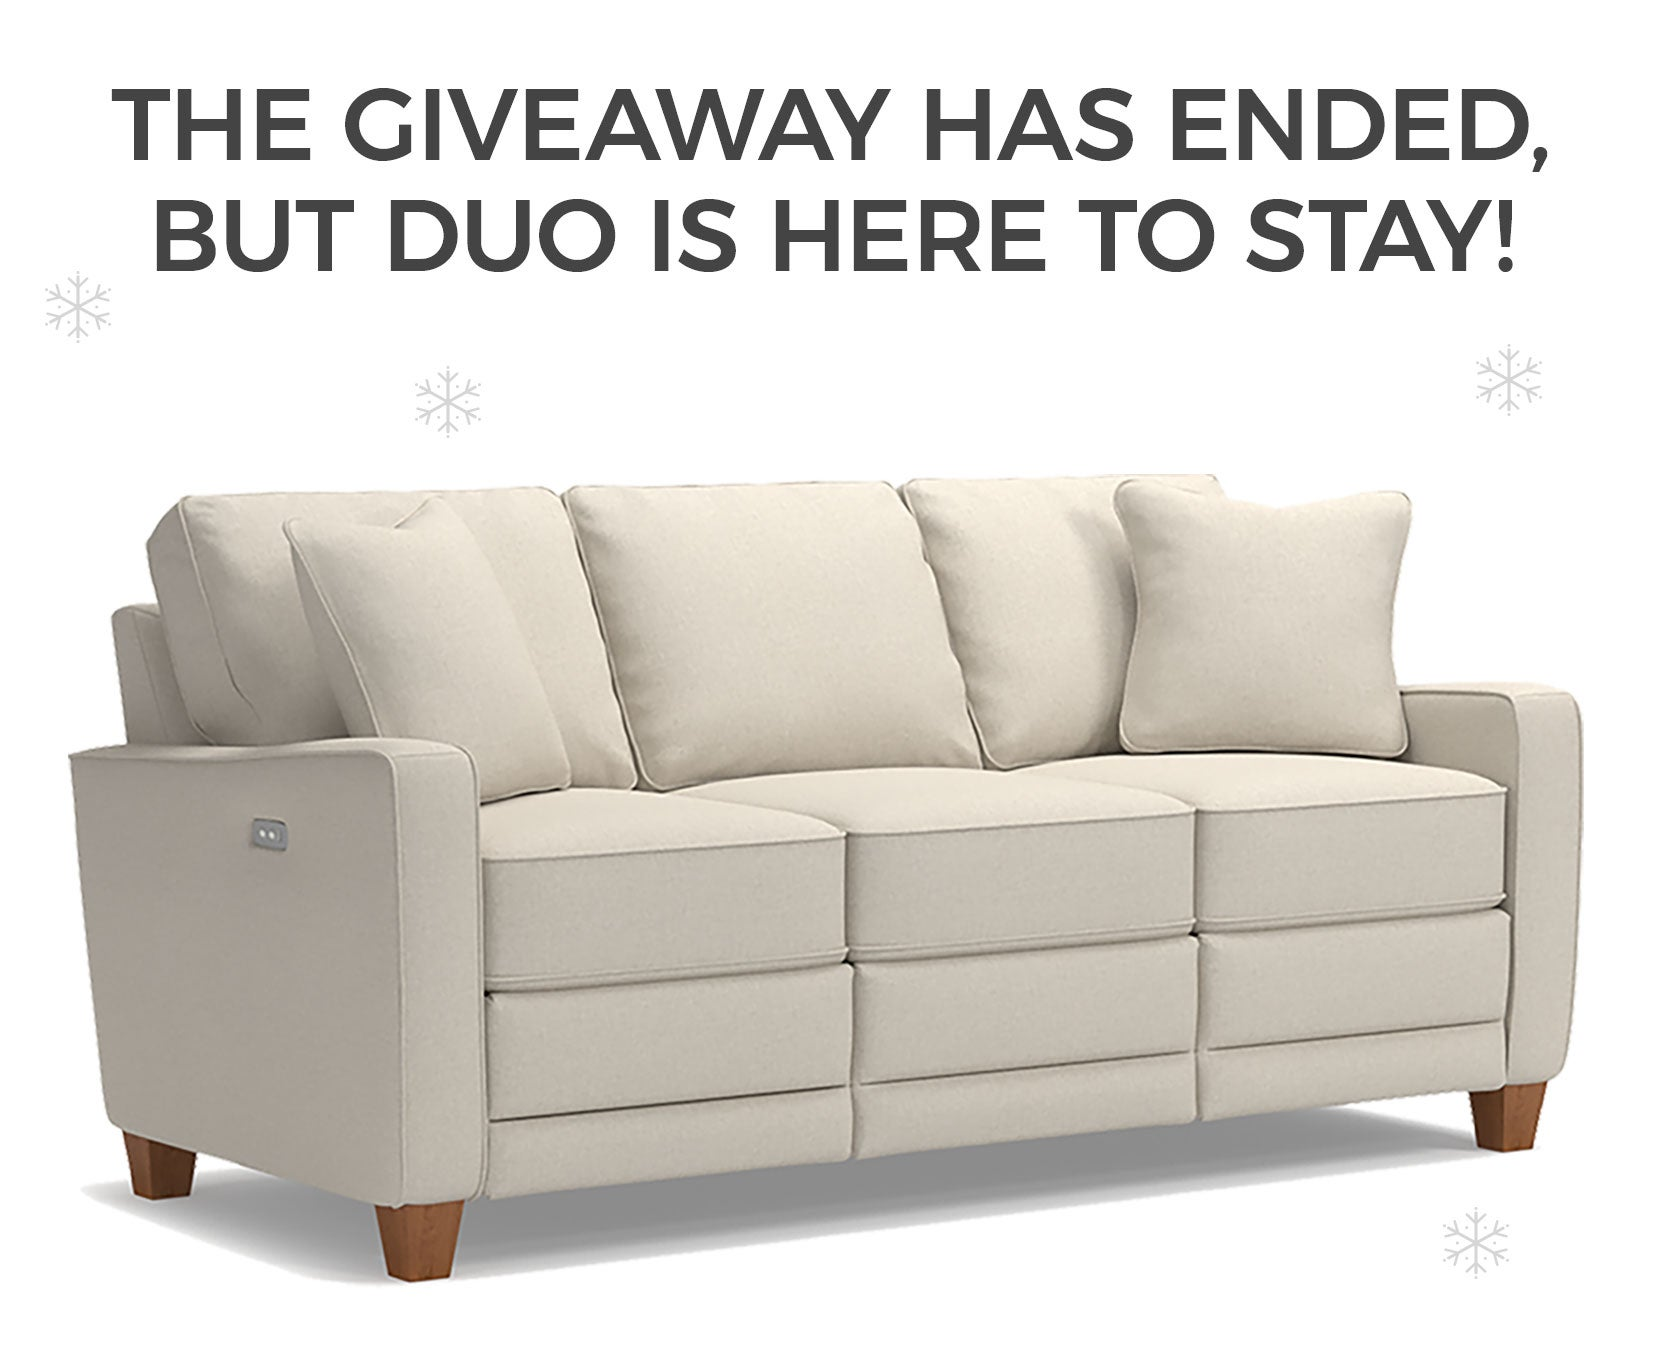 The giveaway has ended, but duo is here to stay!